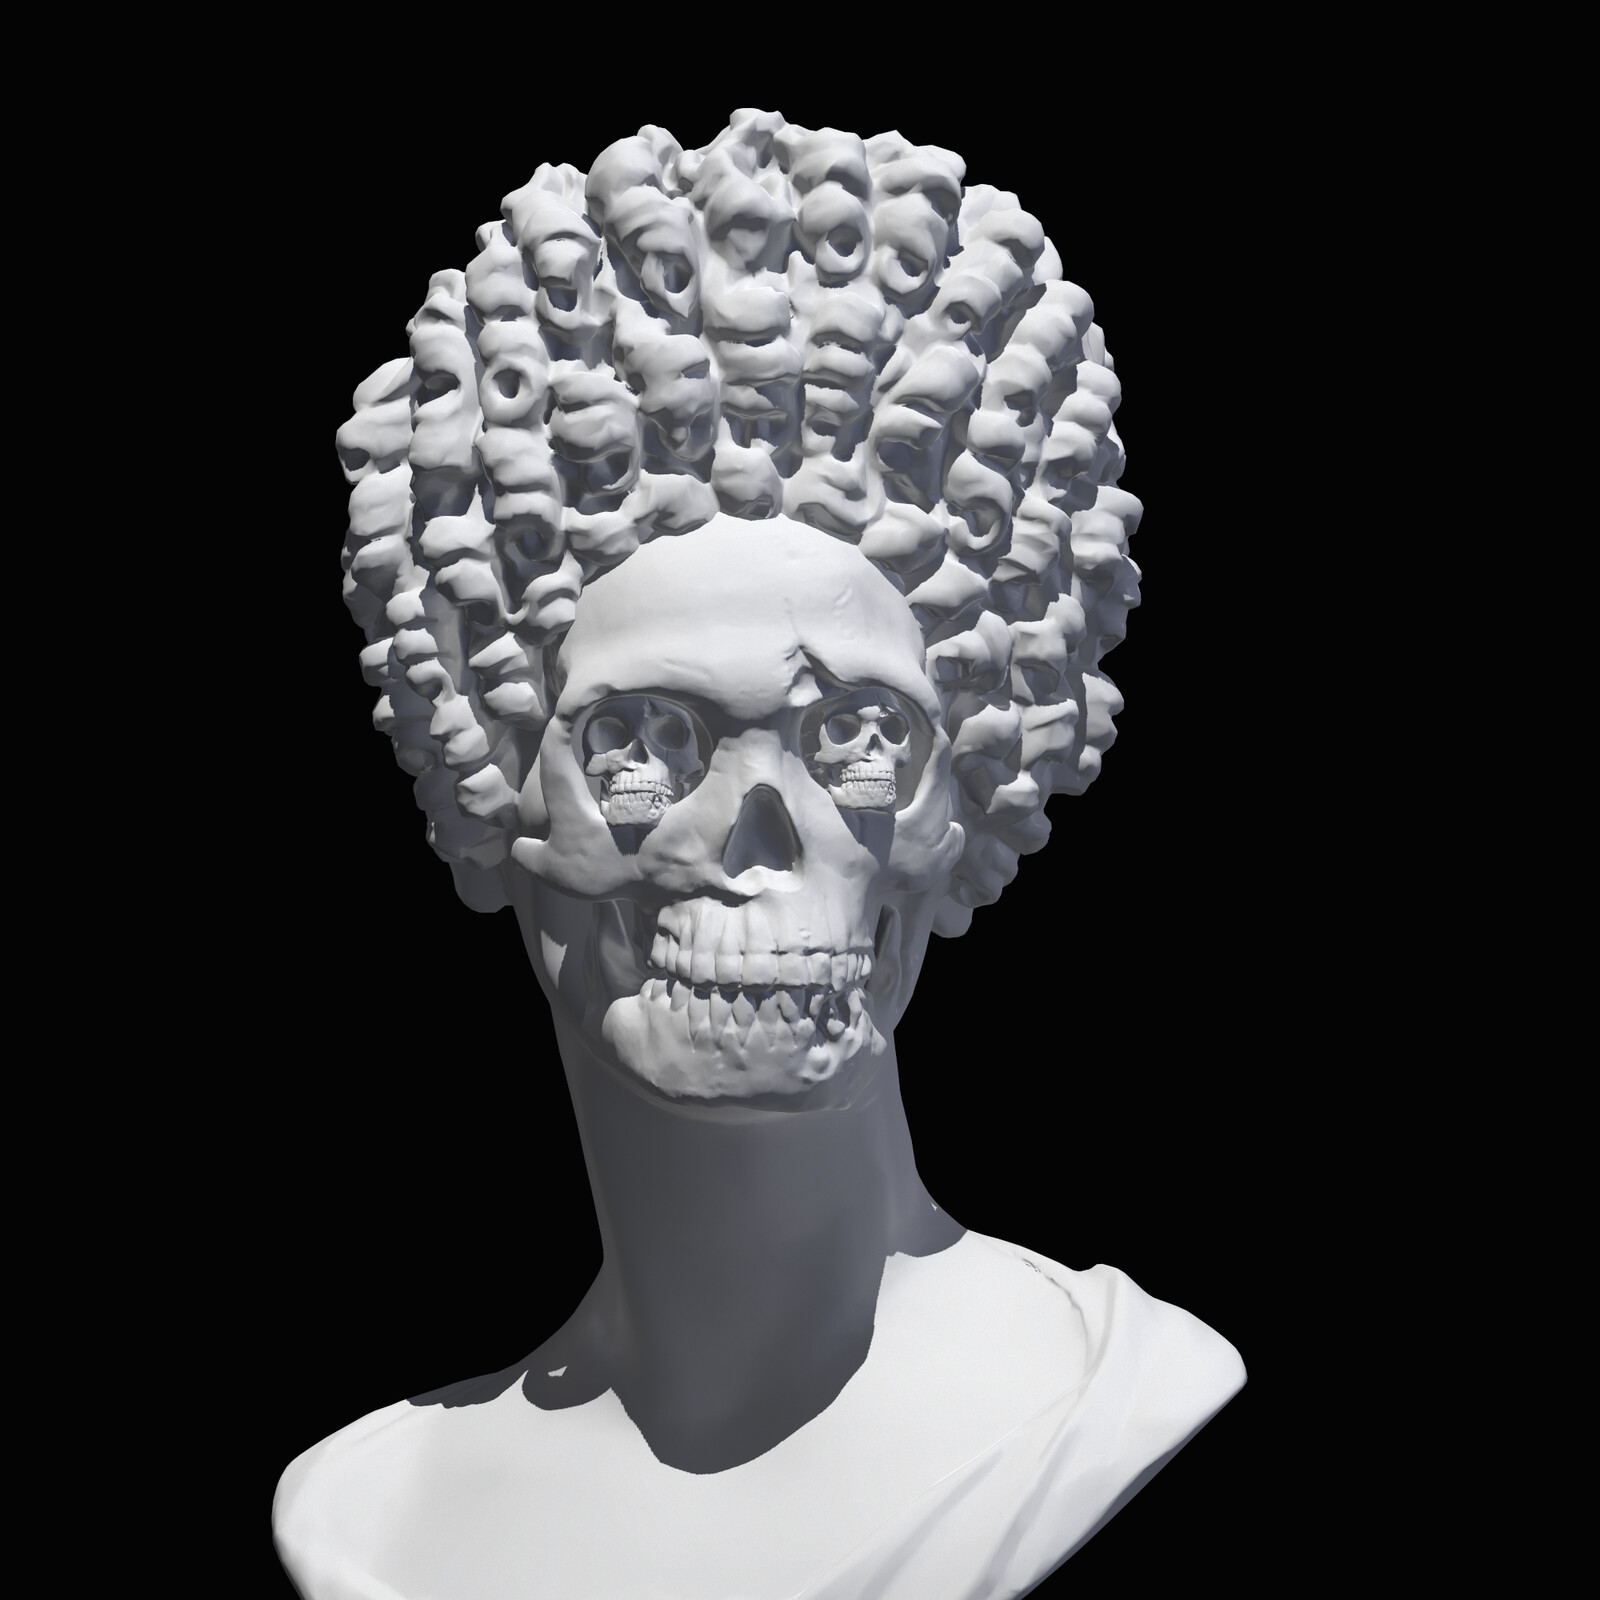 Fonseca bust revisited by myself